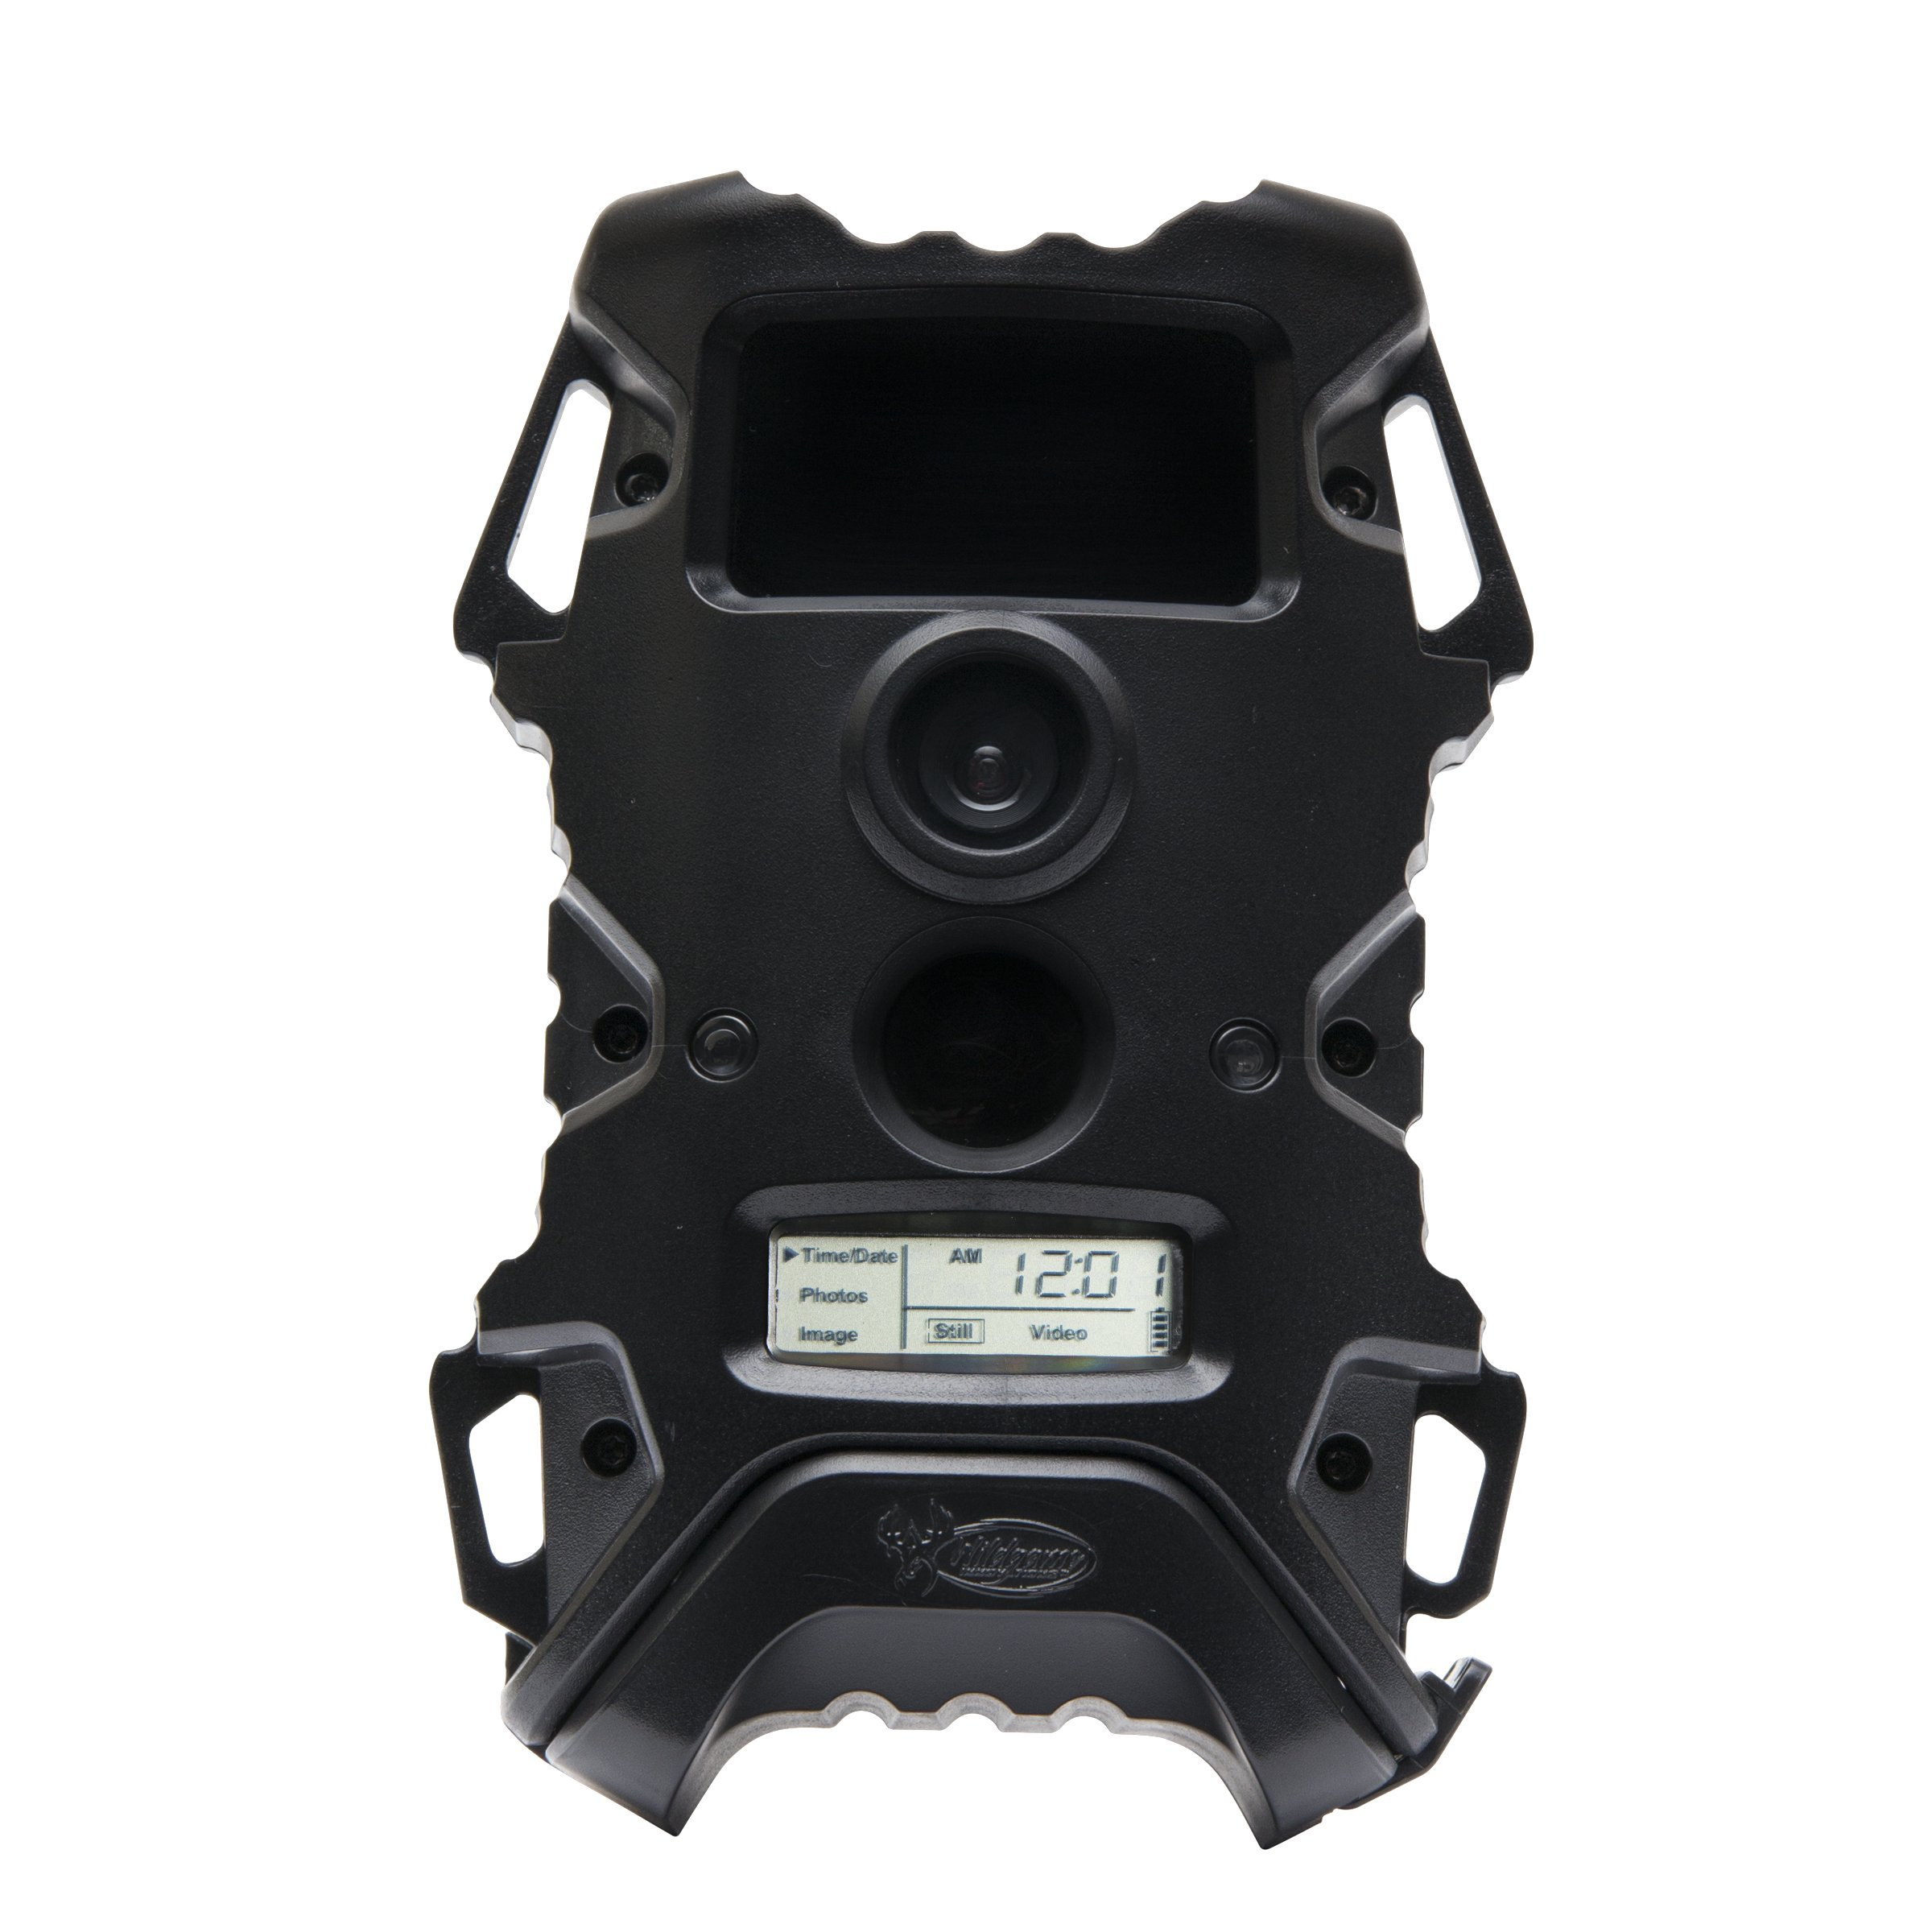 WGI B.A. PRODUCTS Wildgame Innovations Terra 8 Invisible Flash Trail Camera, Black